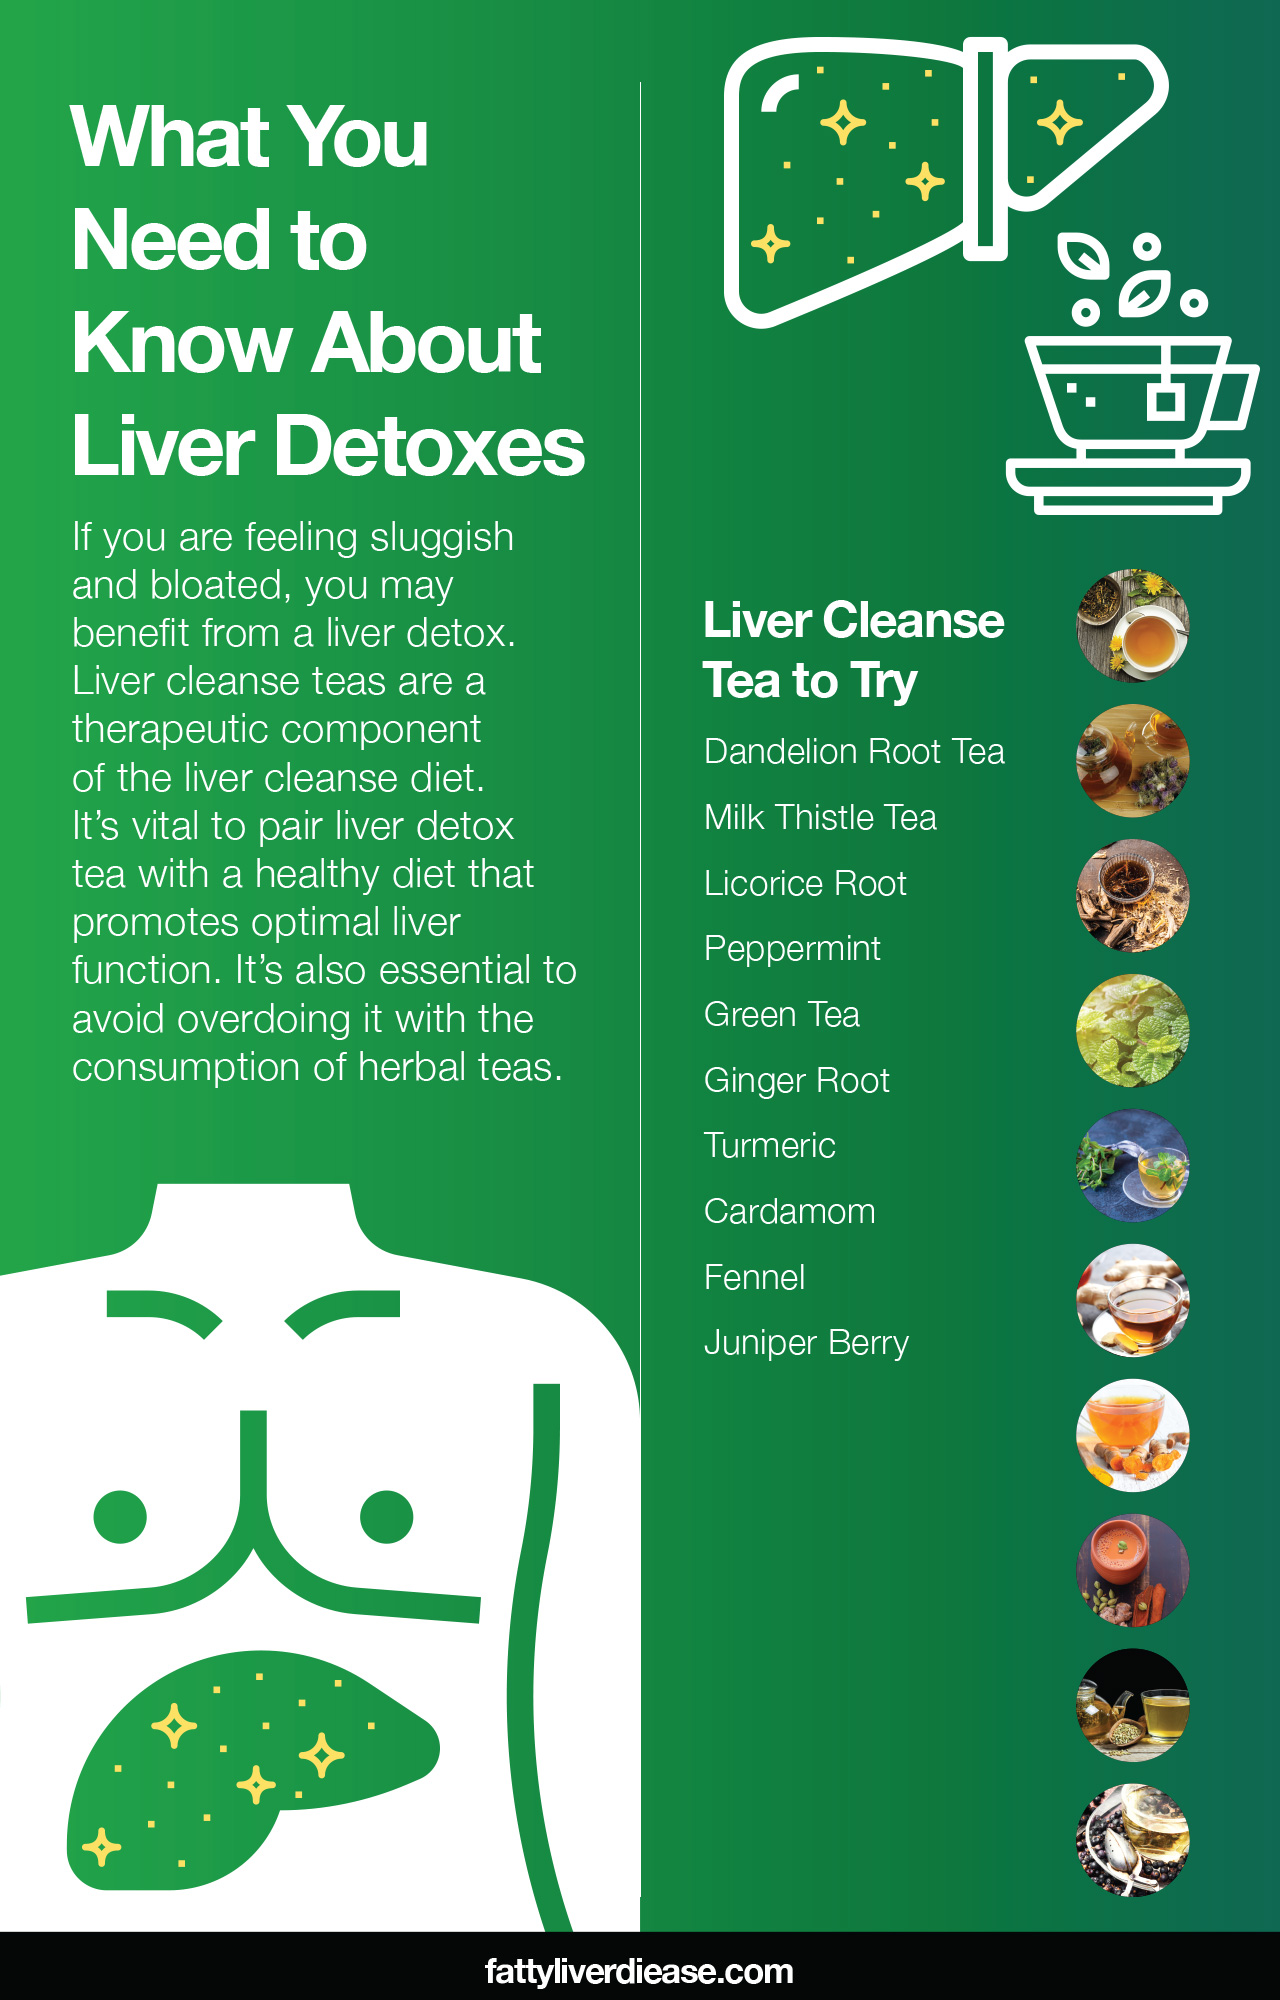 Liver Cleanse Tea to Try